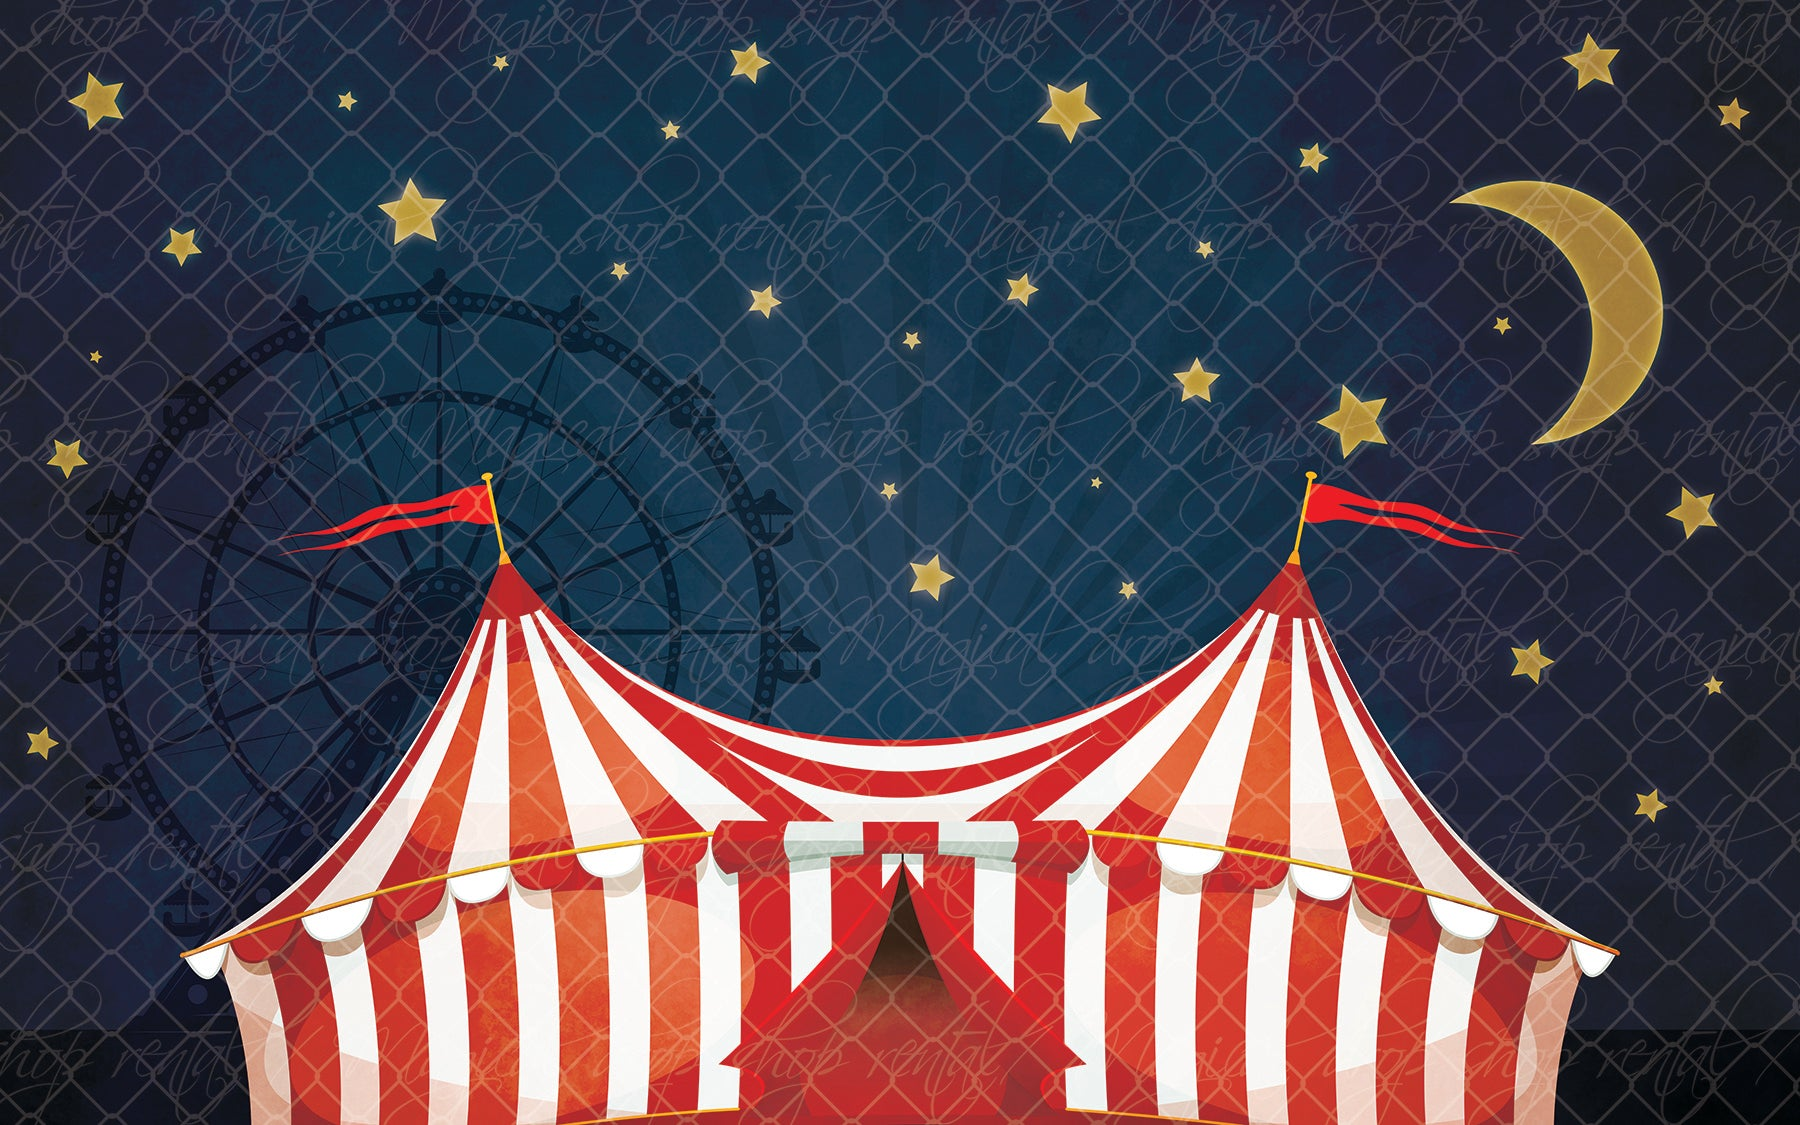 Night at the Circus 2